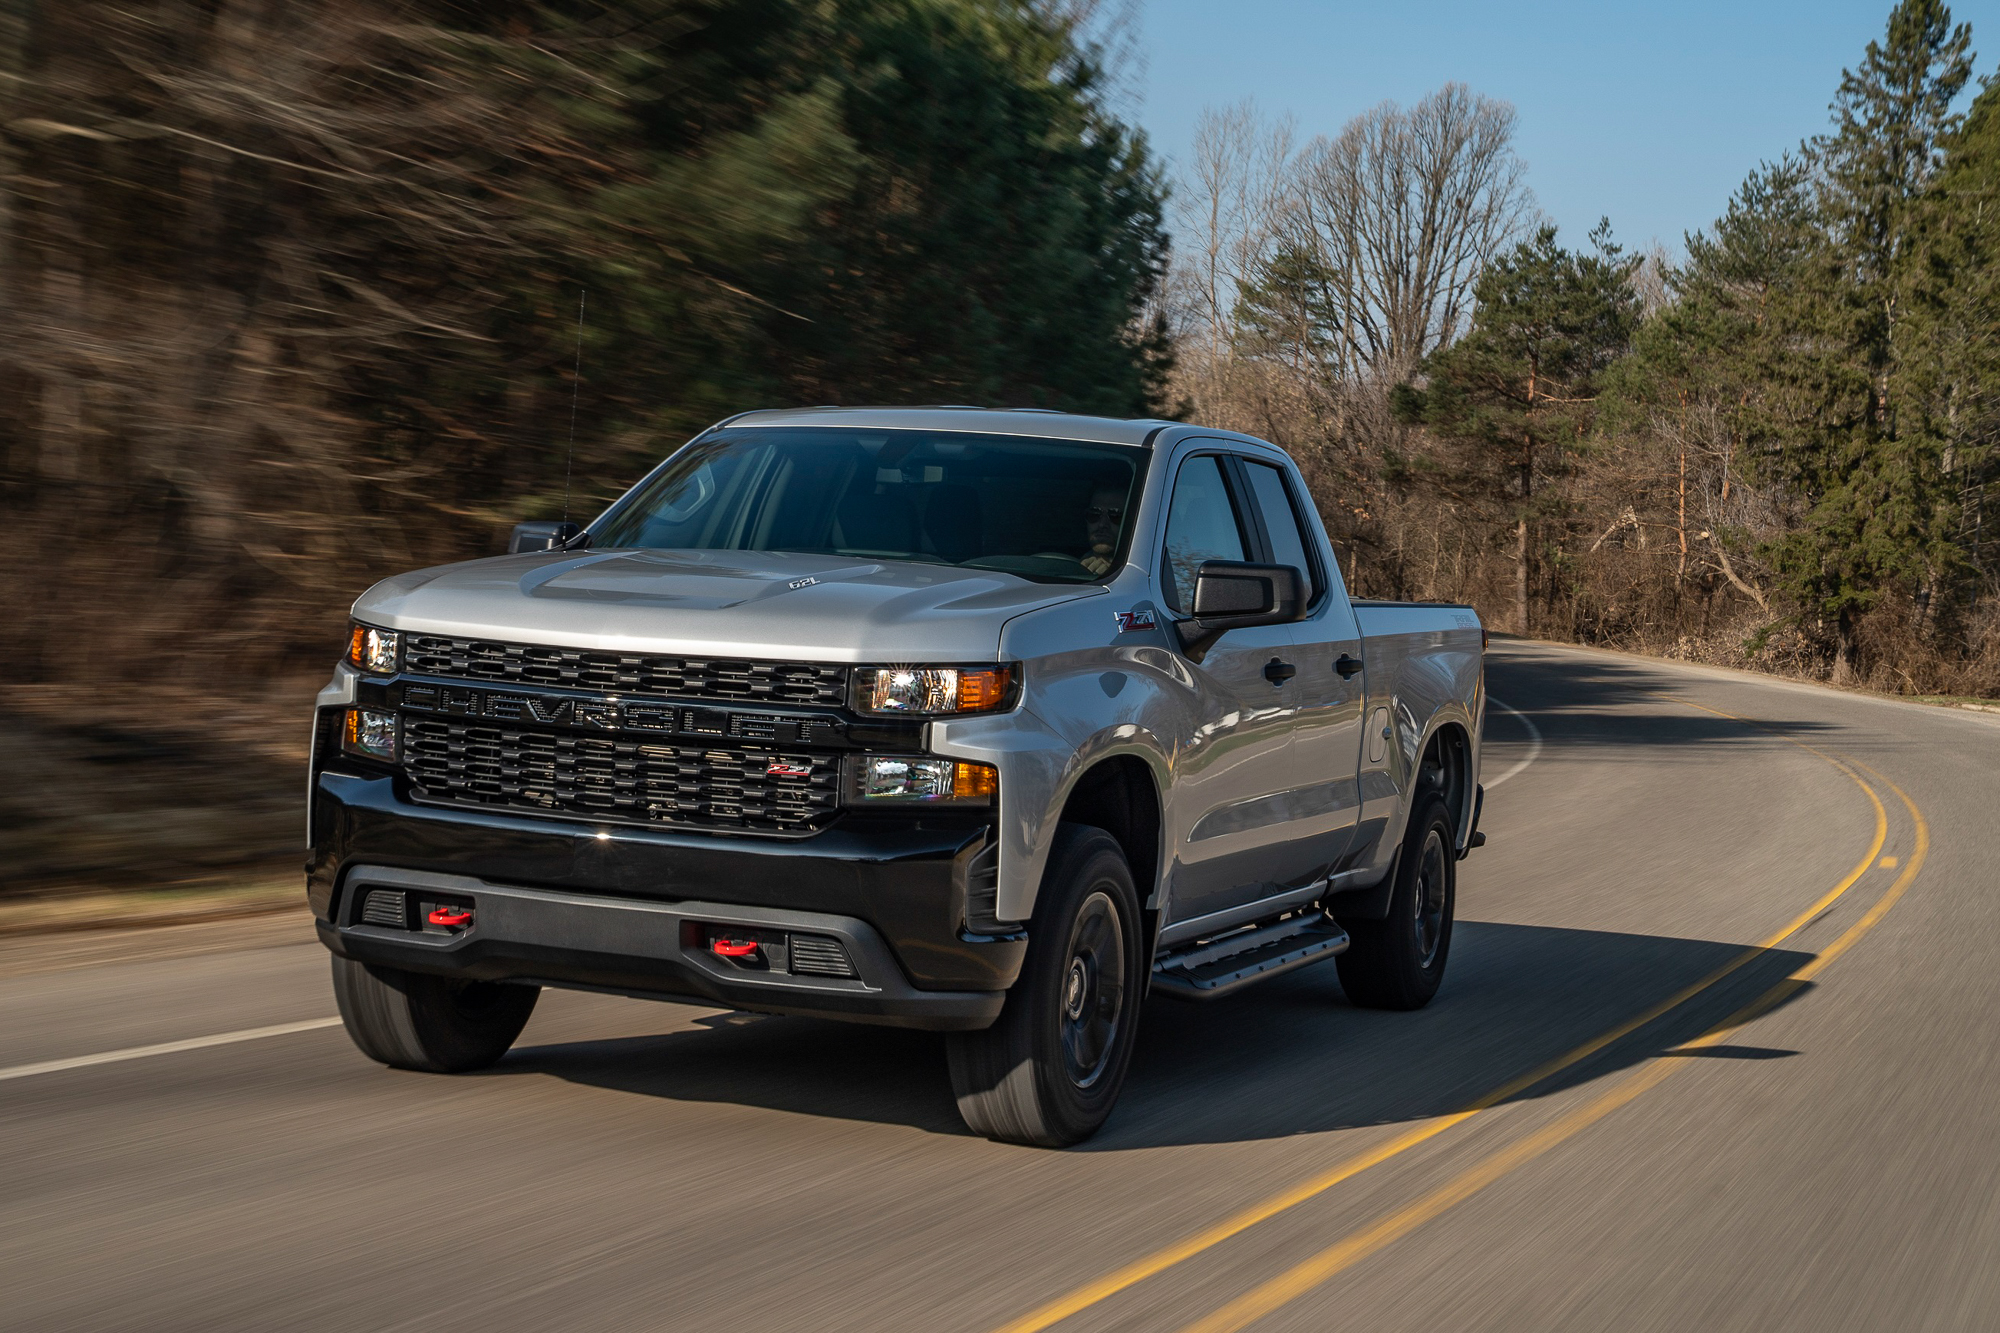 All the Pickup Truck News: Overlanding for Cheap, Sierra and Silverado 1500 Updates, a Wish List for Tundra